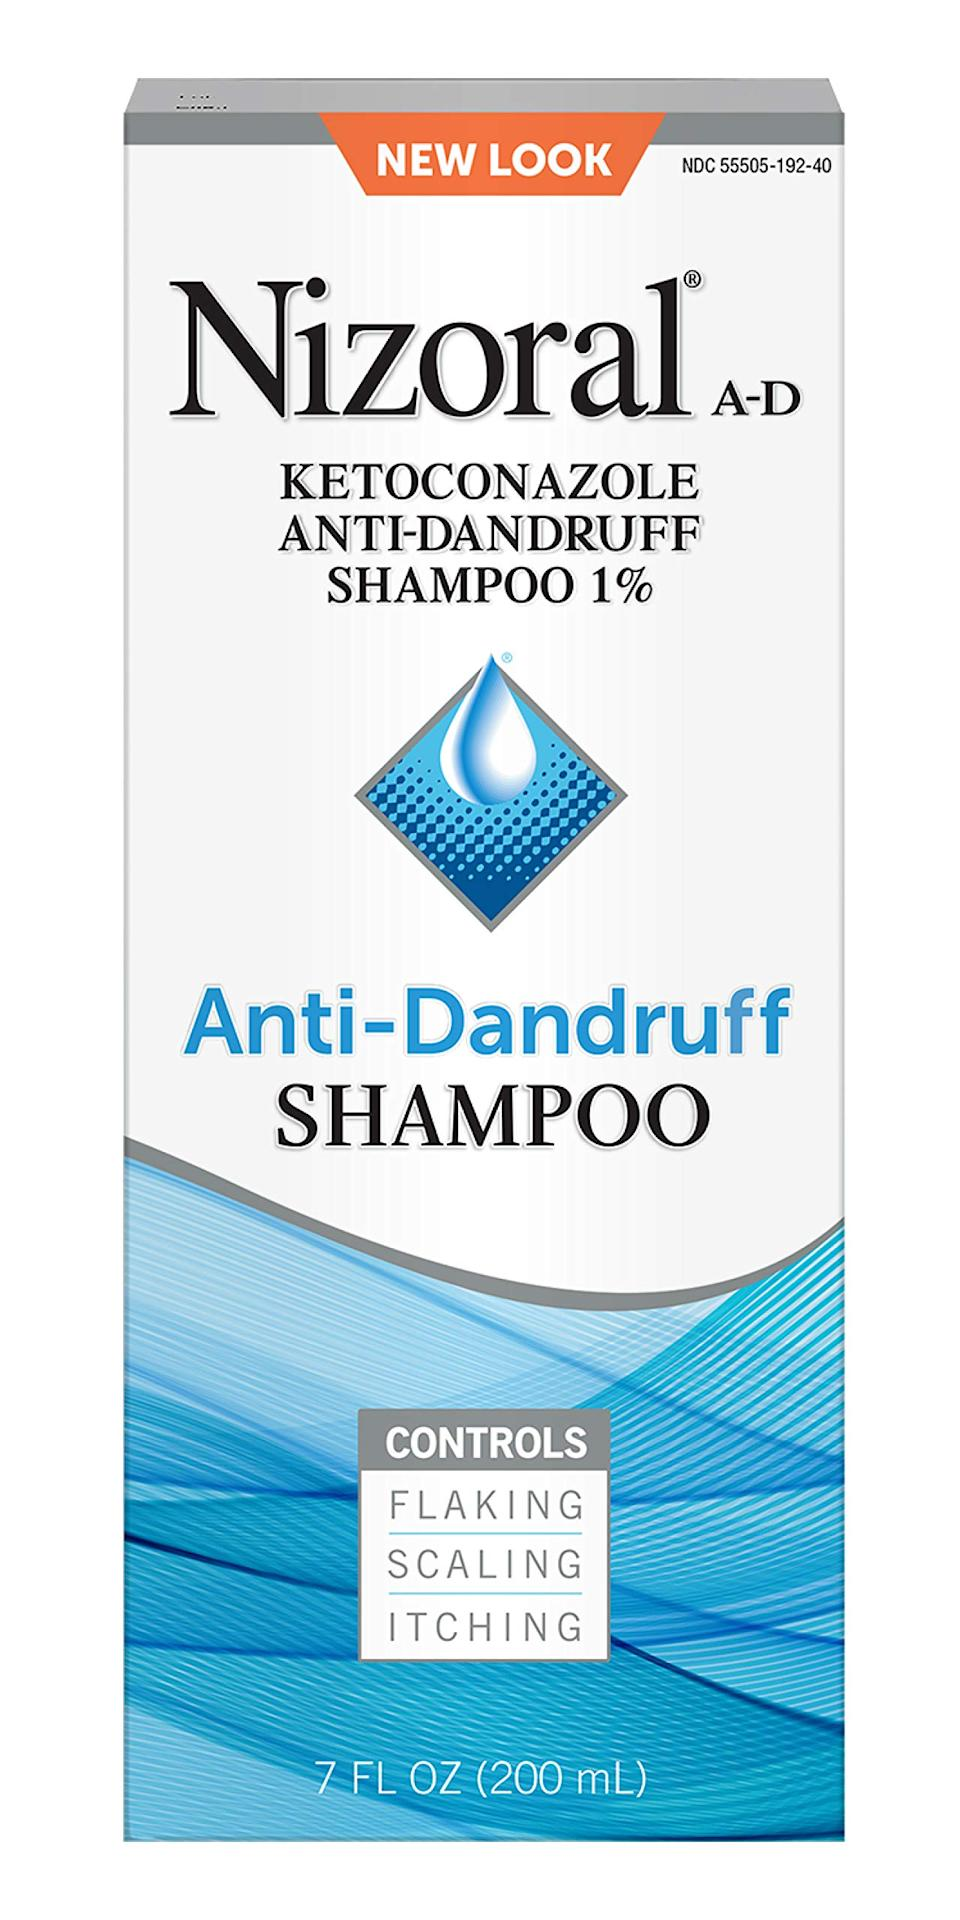 """<h3>Nizoral Anti-Dandruff Shampoo<br></h3><br><strong>Amanda</strong> <br><br>""""I read online that people have used this anti-dandruff shampoo to clear up stubborn, yeast-related breakouts on their foreheads (it sounds so gross, I know). Unsure of what's been causing the persistent pimples on my own forehead throughout these past few months of lockdown, I decided to give this a try myself and I couldn't believe how quickly it cleared my skin up.""""<br><br><strong>nizoral</strong> A-D Anti-Dandruff Shampoo, 7 Fl. Oz, $, available at <a href=""""https://amzn.to/2M92SJr"""" rel=""""nofollow noopener"""" target=""""_blank"""" data-ylk=""""slk:Amazon"""" class=""""link rapid-noclick-resp"""">Amazon</a>"""